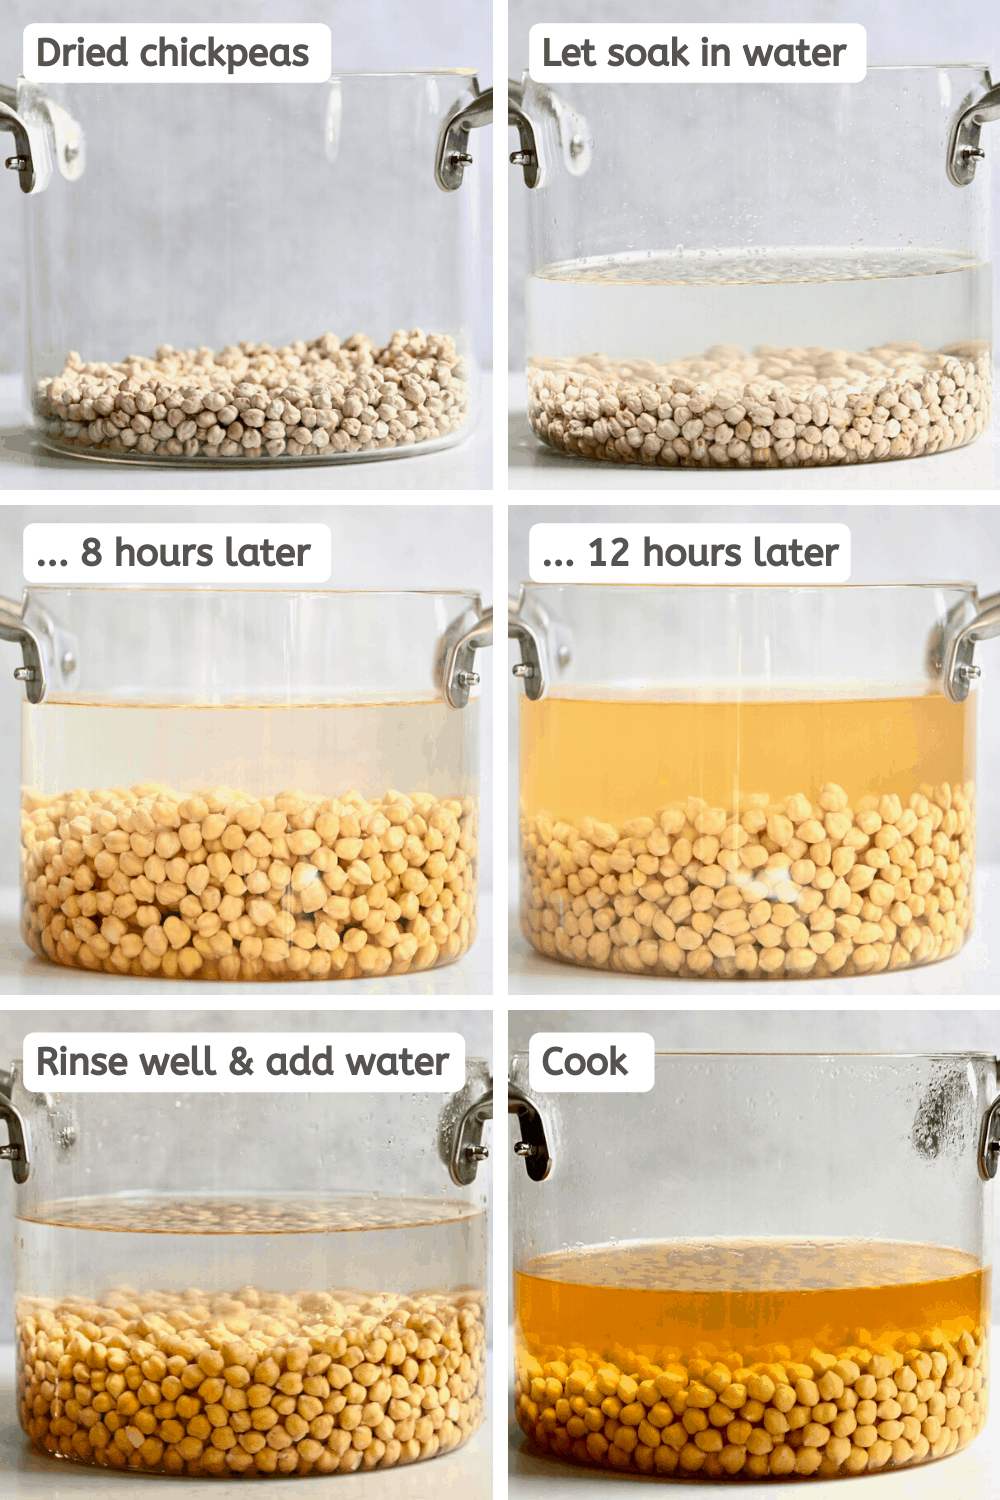 Soaking chickpeas steps